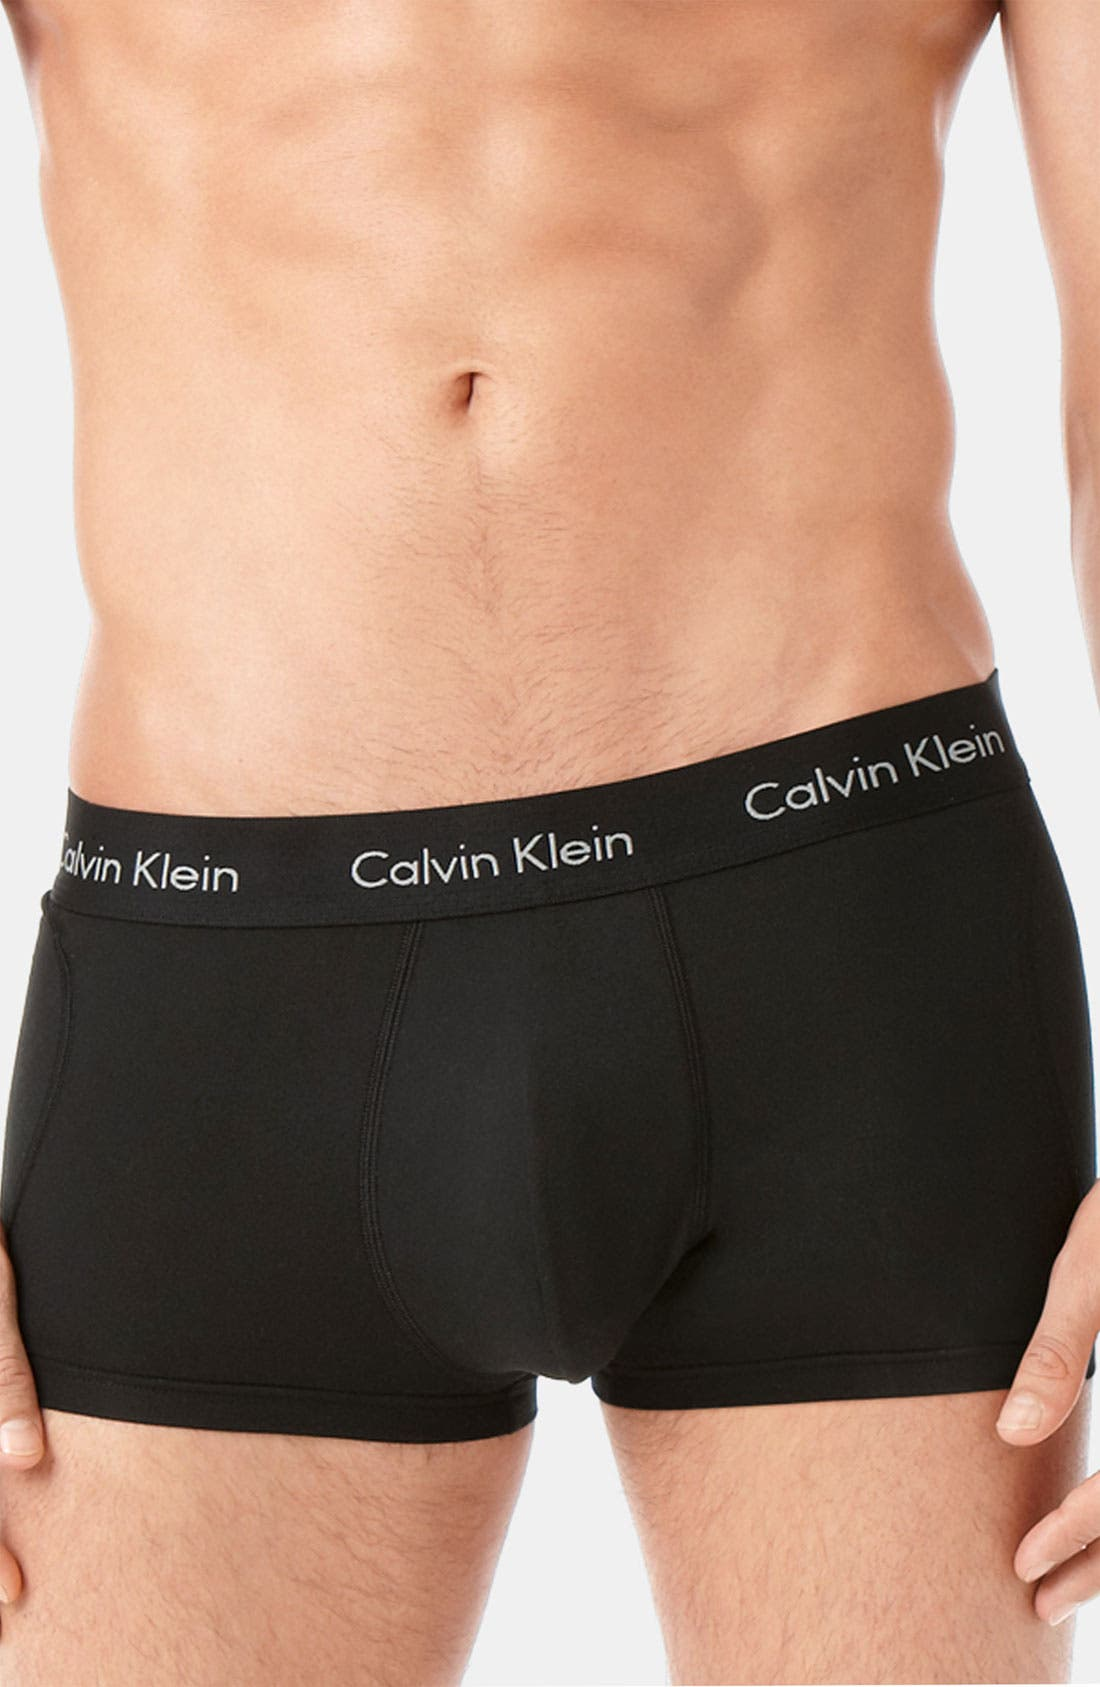 Alternate Image 2  - Calvin Klein Microfiber Stretch Trunks (Assorted 2-Pack)(Online Exclusive)